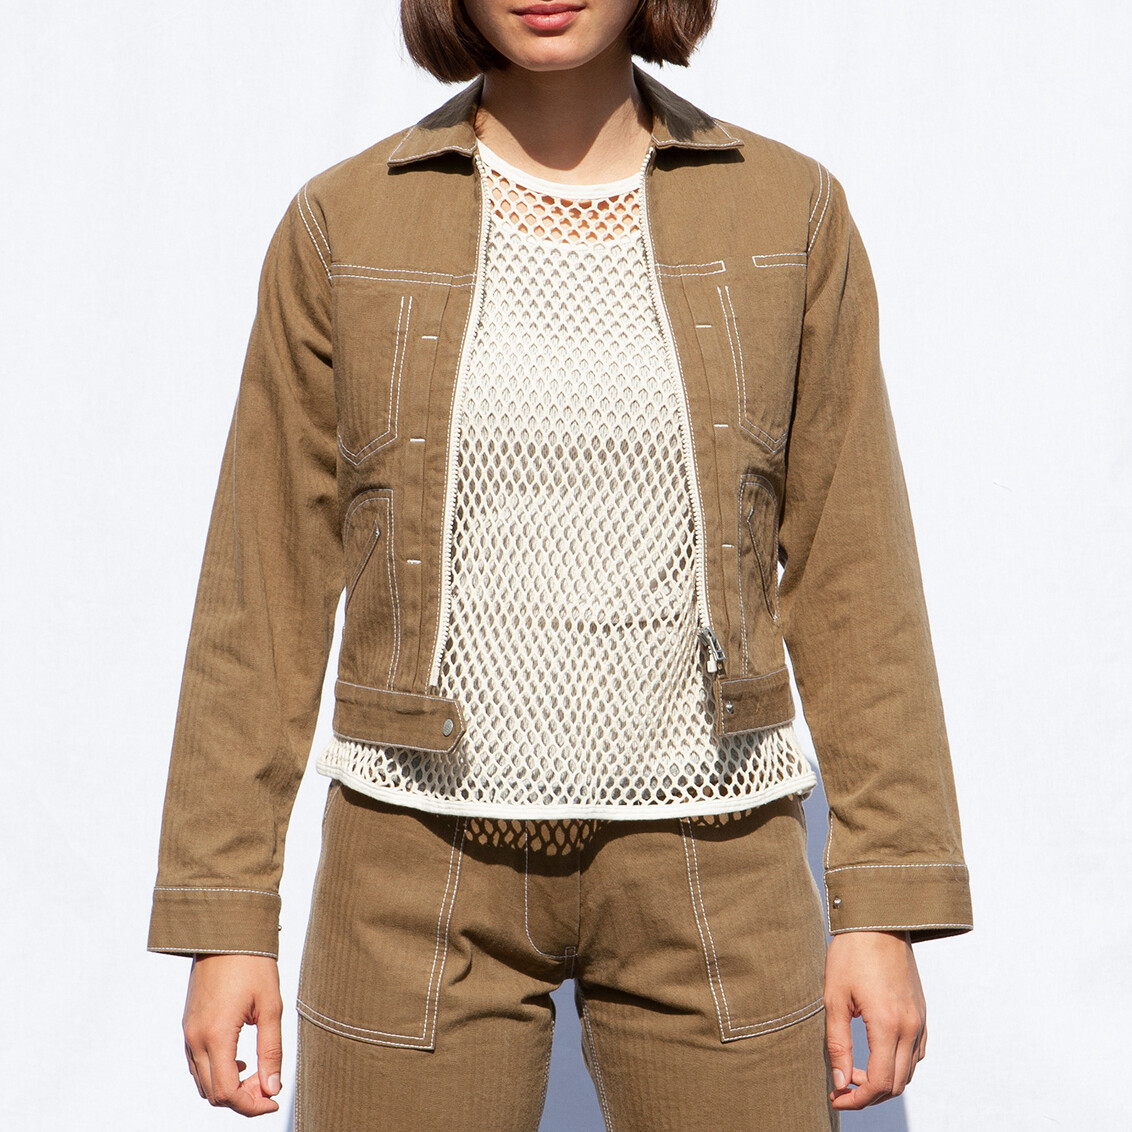 W'MENSWEAR ENGINEER'S JACKET IN BEIGE